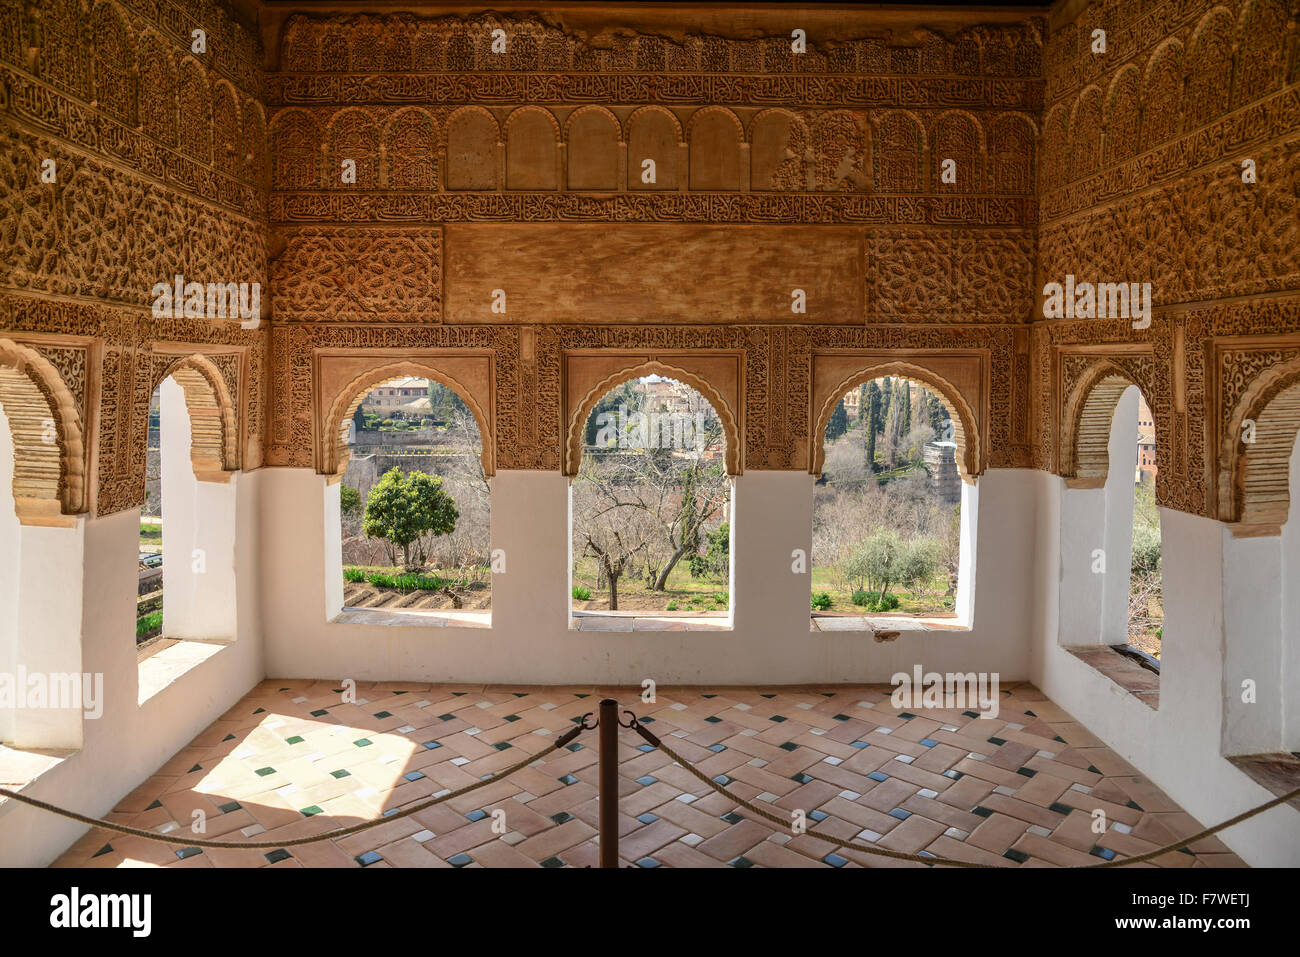 Interior of Palace Generalife, Alhambra, Granada, Spain